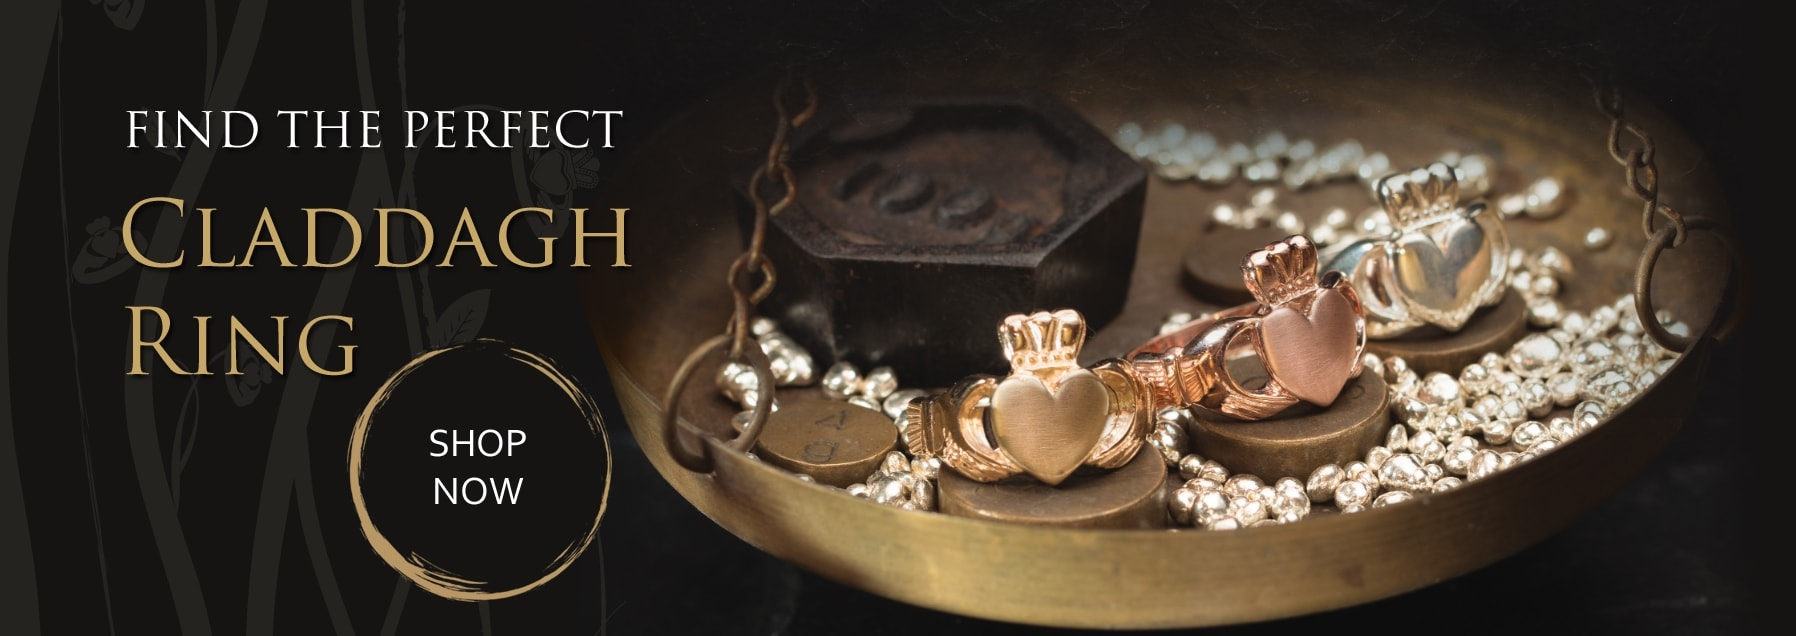 Claddagh Jewellers: Home Of The Authentic Claddagh Ring